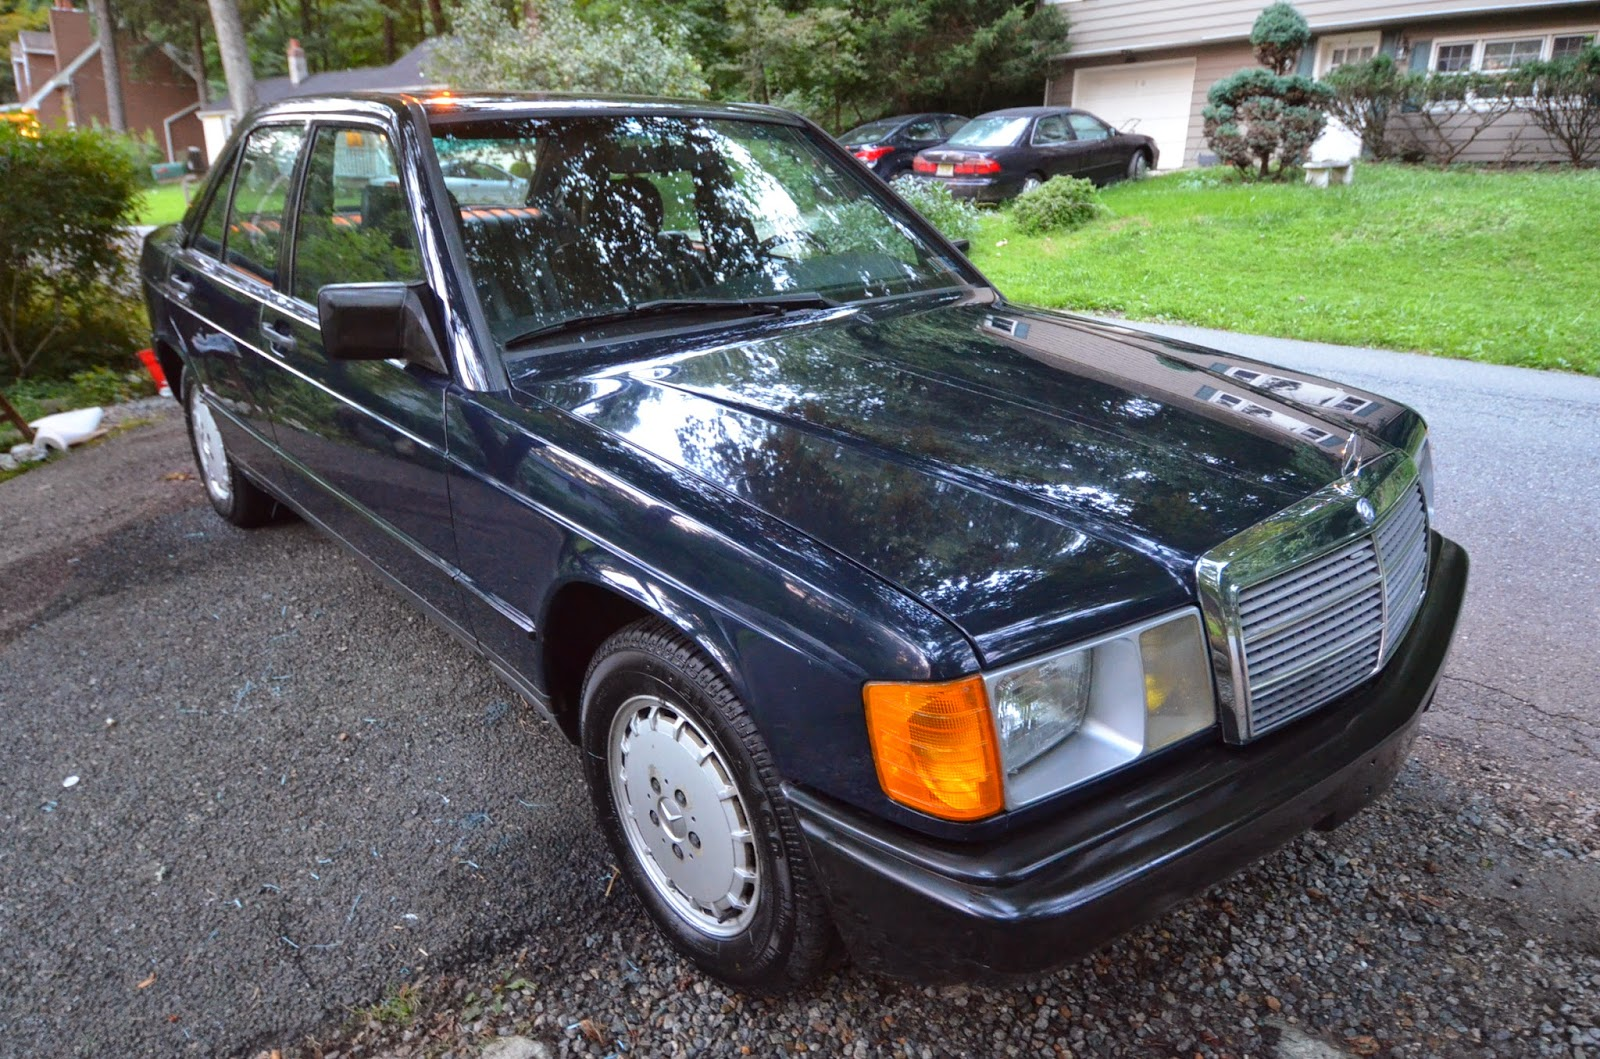 theclassiccarfactory : mercedes benz w201 190e 2.3 / 2.6